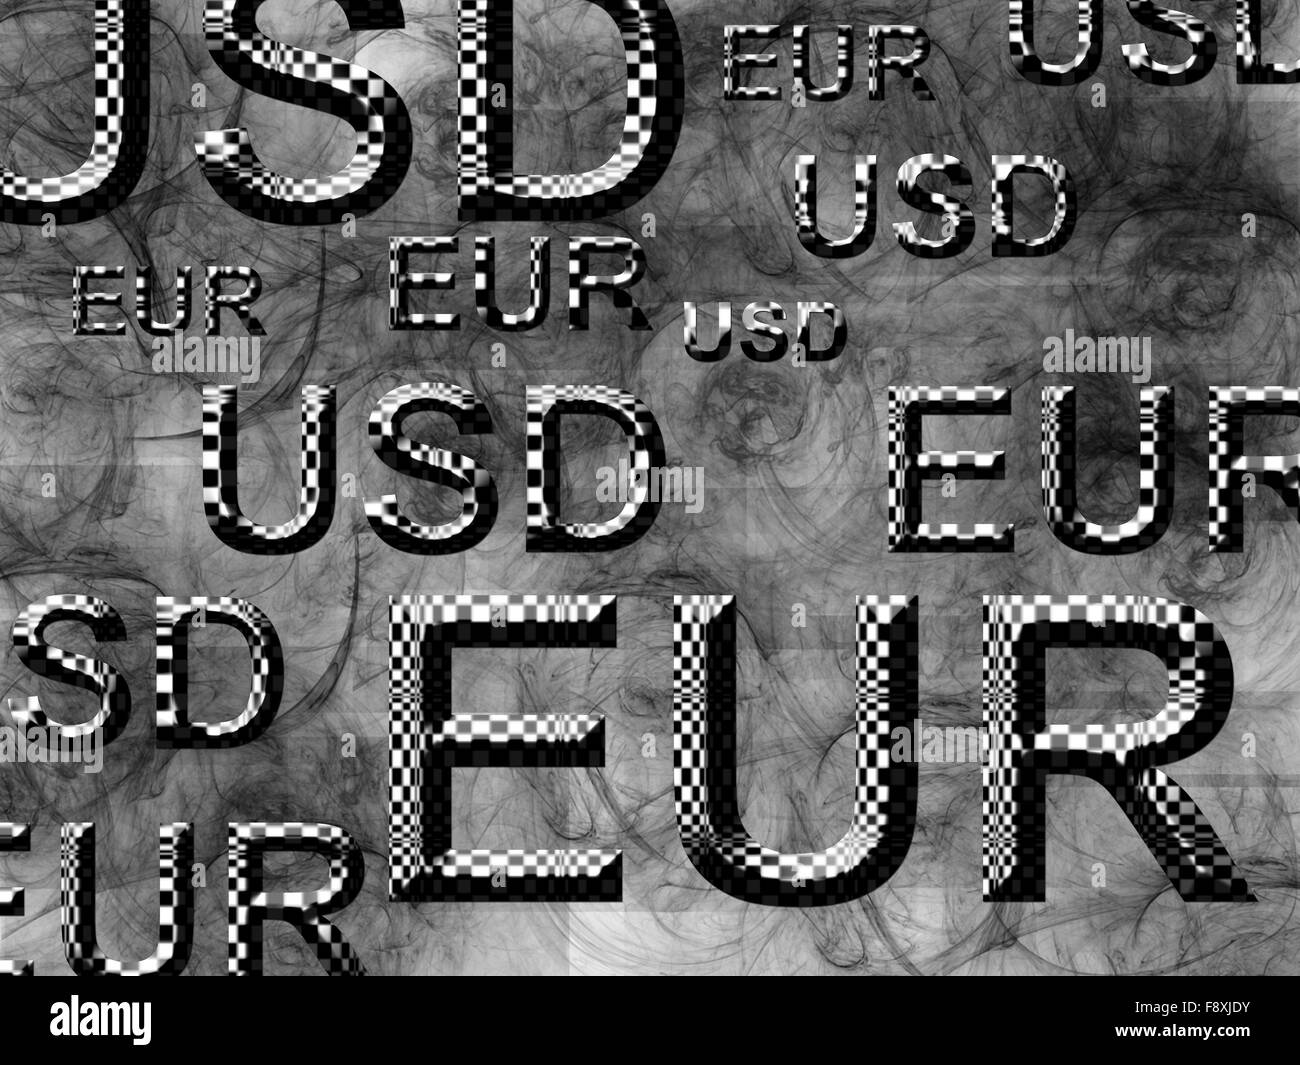 eur usd - Stock Image